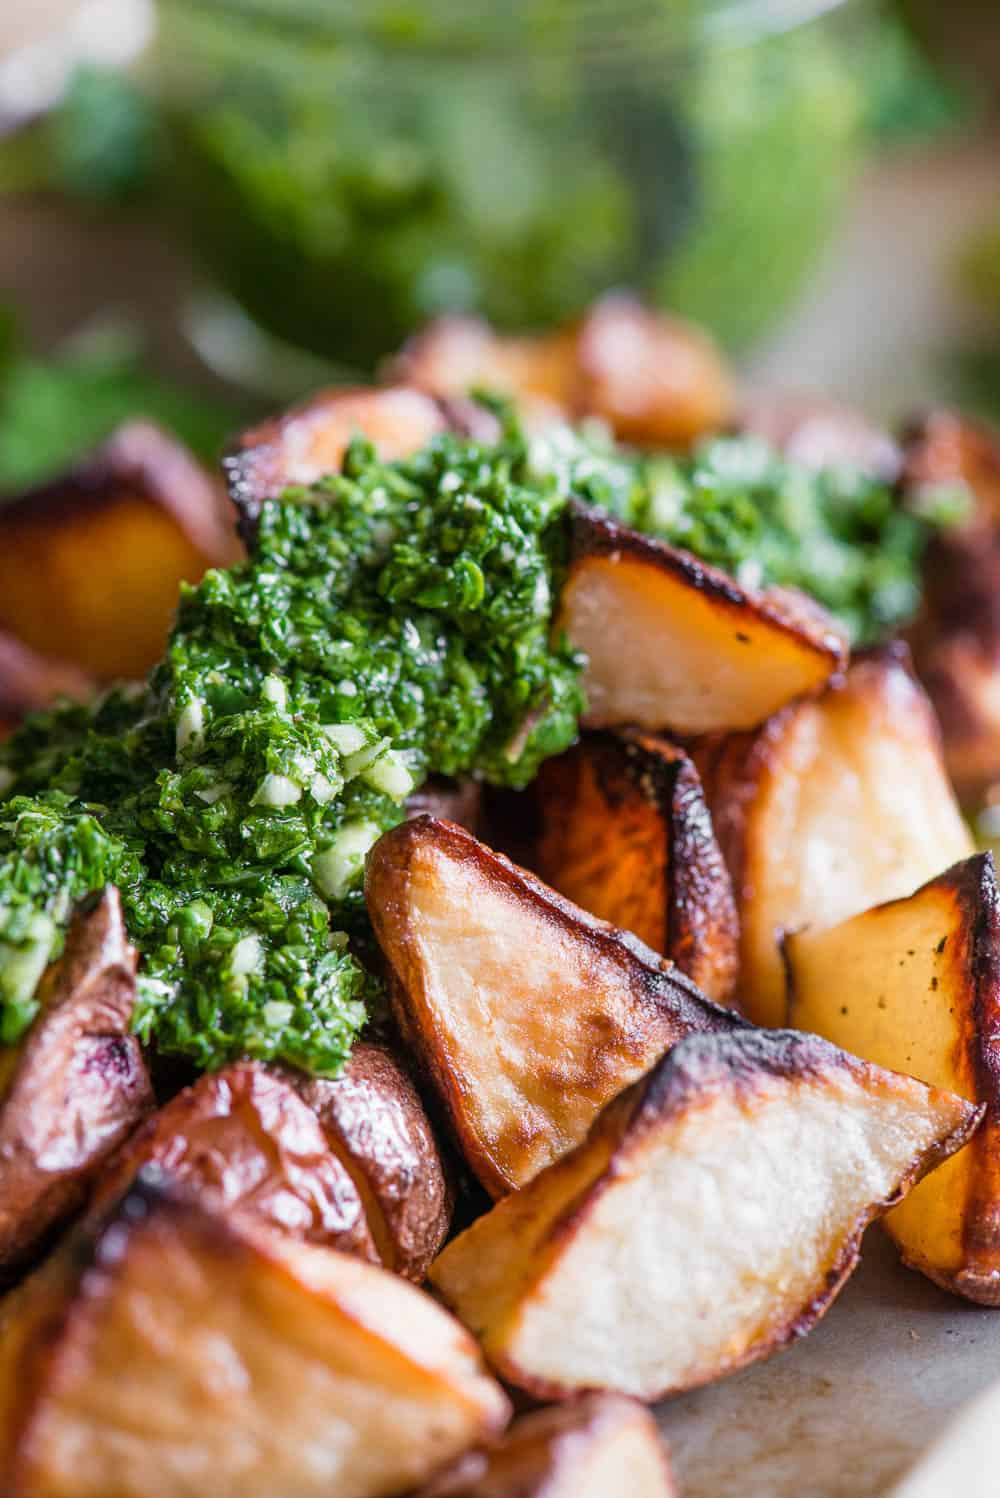 roasted potatoes topped with homemade Chimichurri sauce